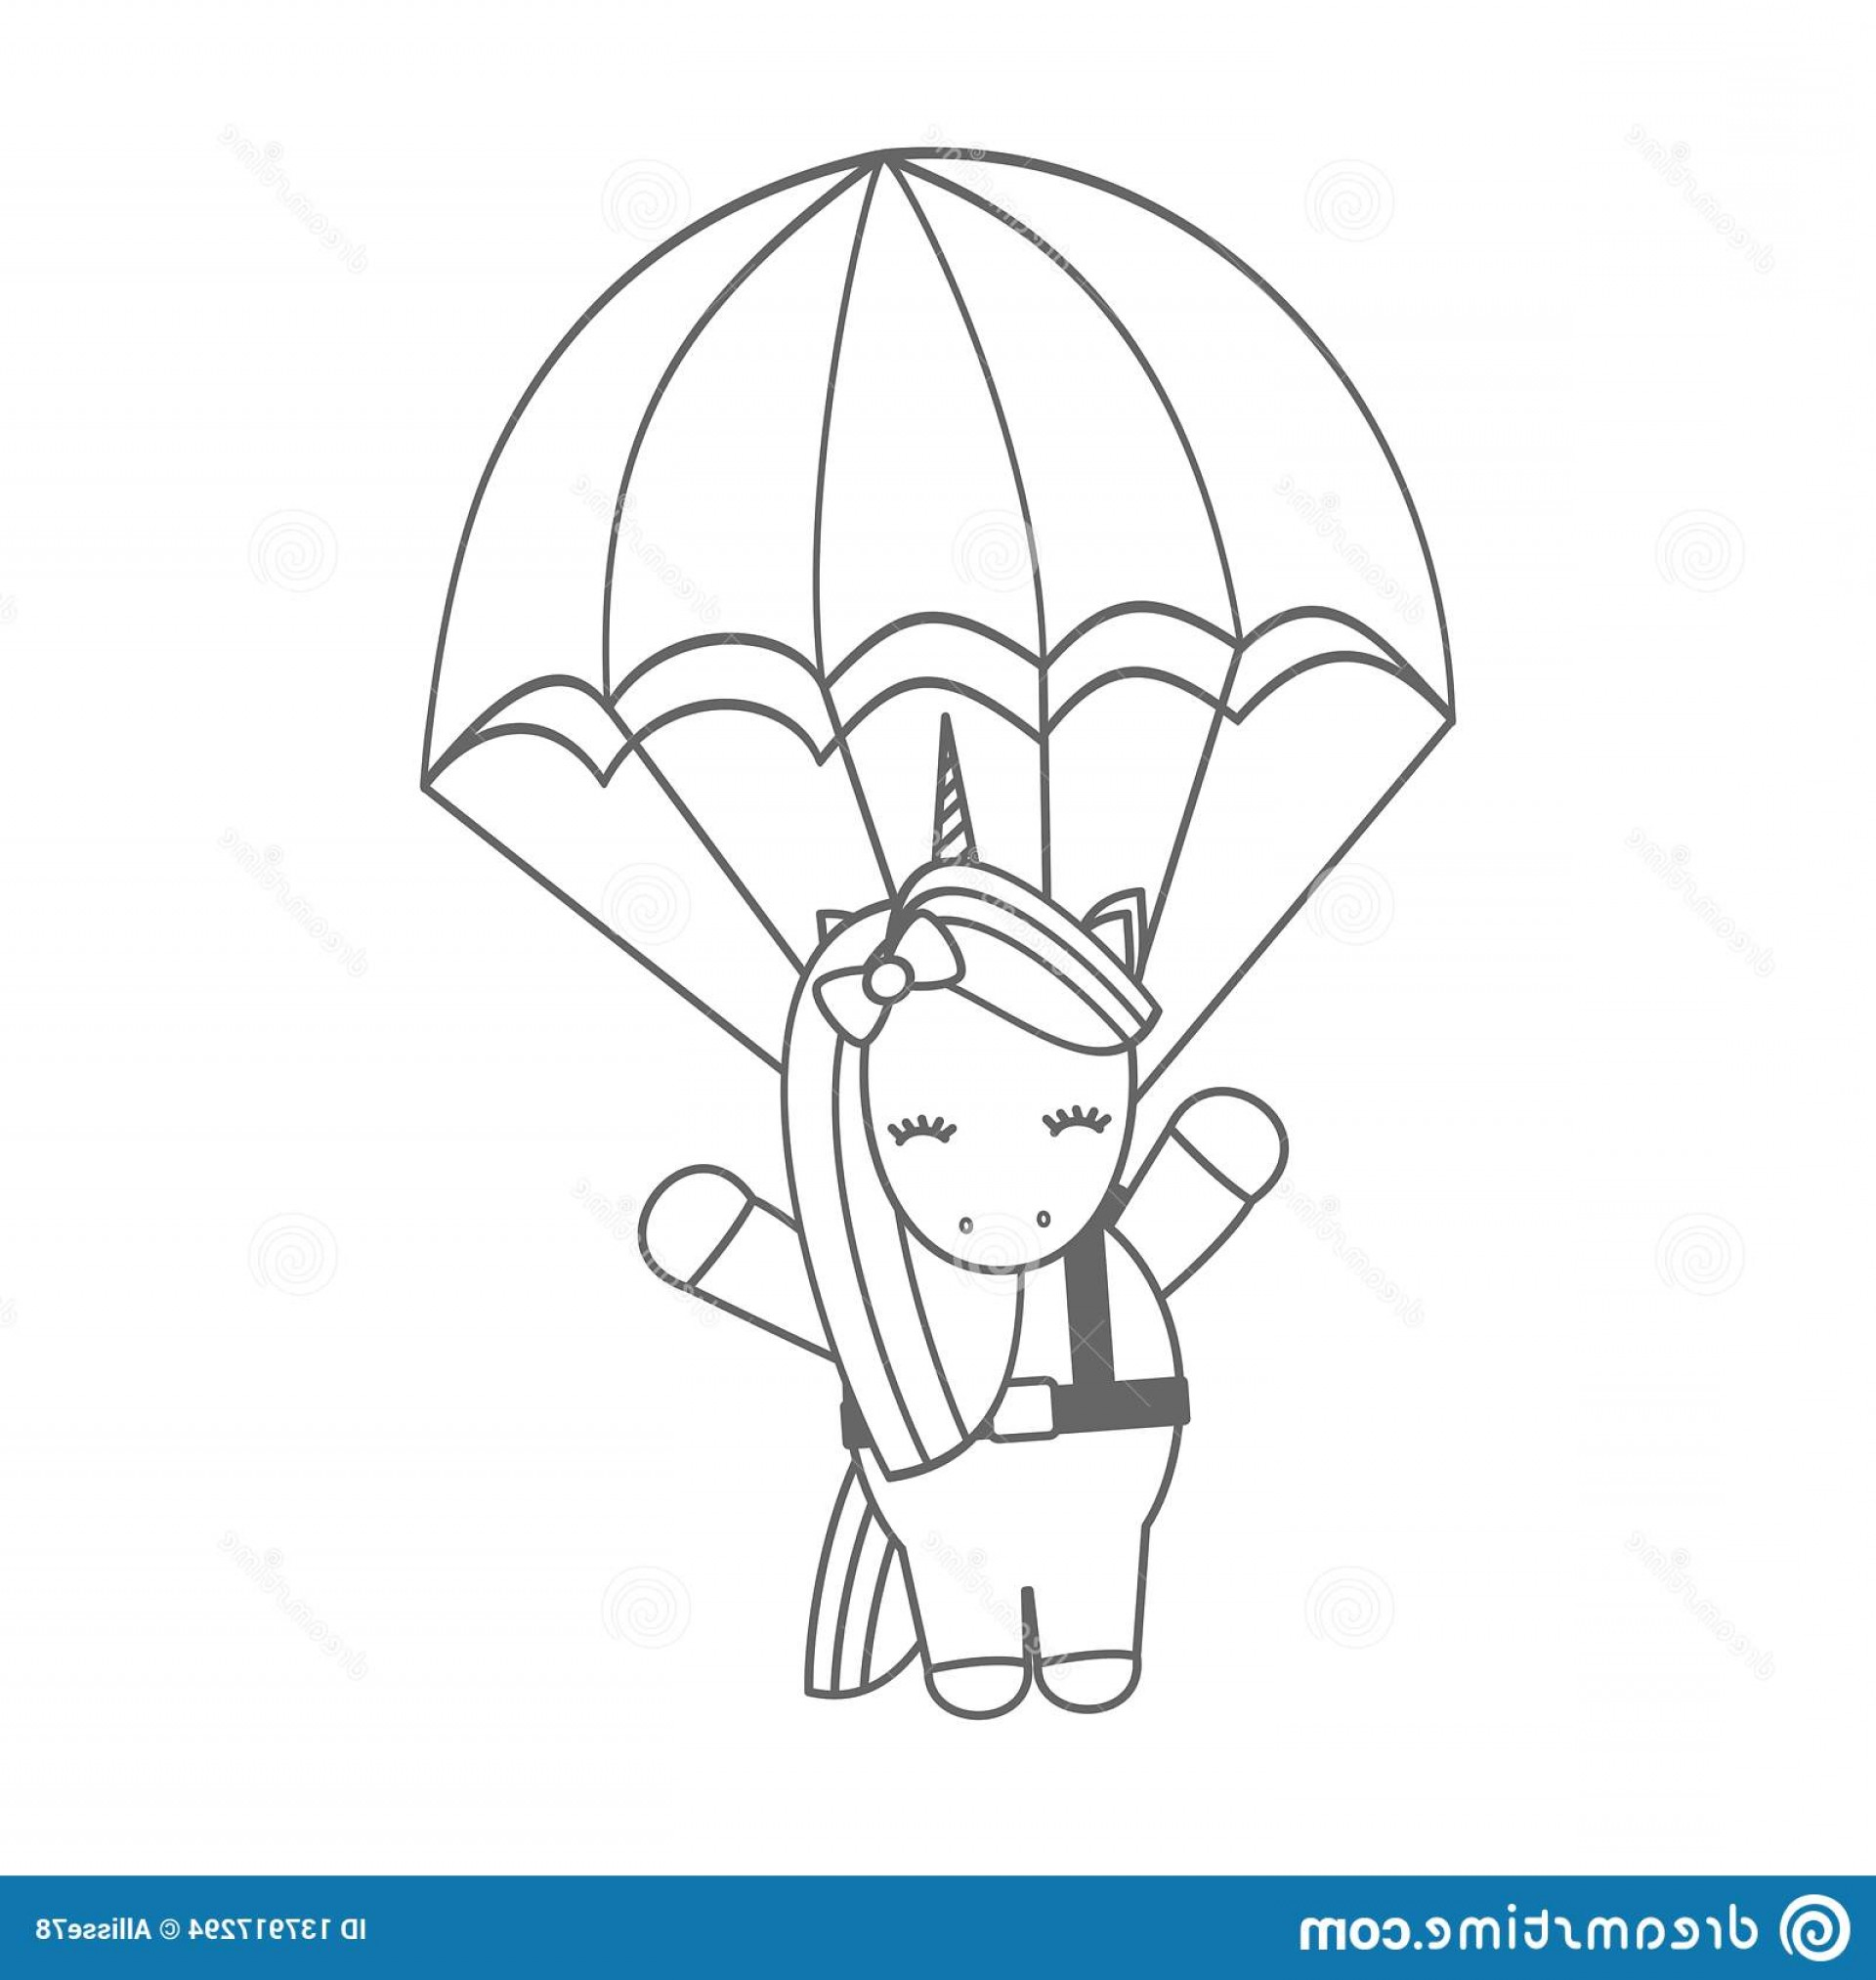 Funny Black And White Vector: Cute Lovely Cartoon Unicorn Flying Parachute Funny Black White Vector Illustration Image